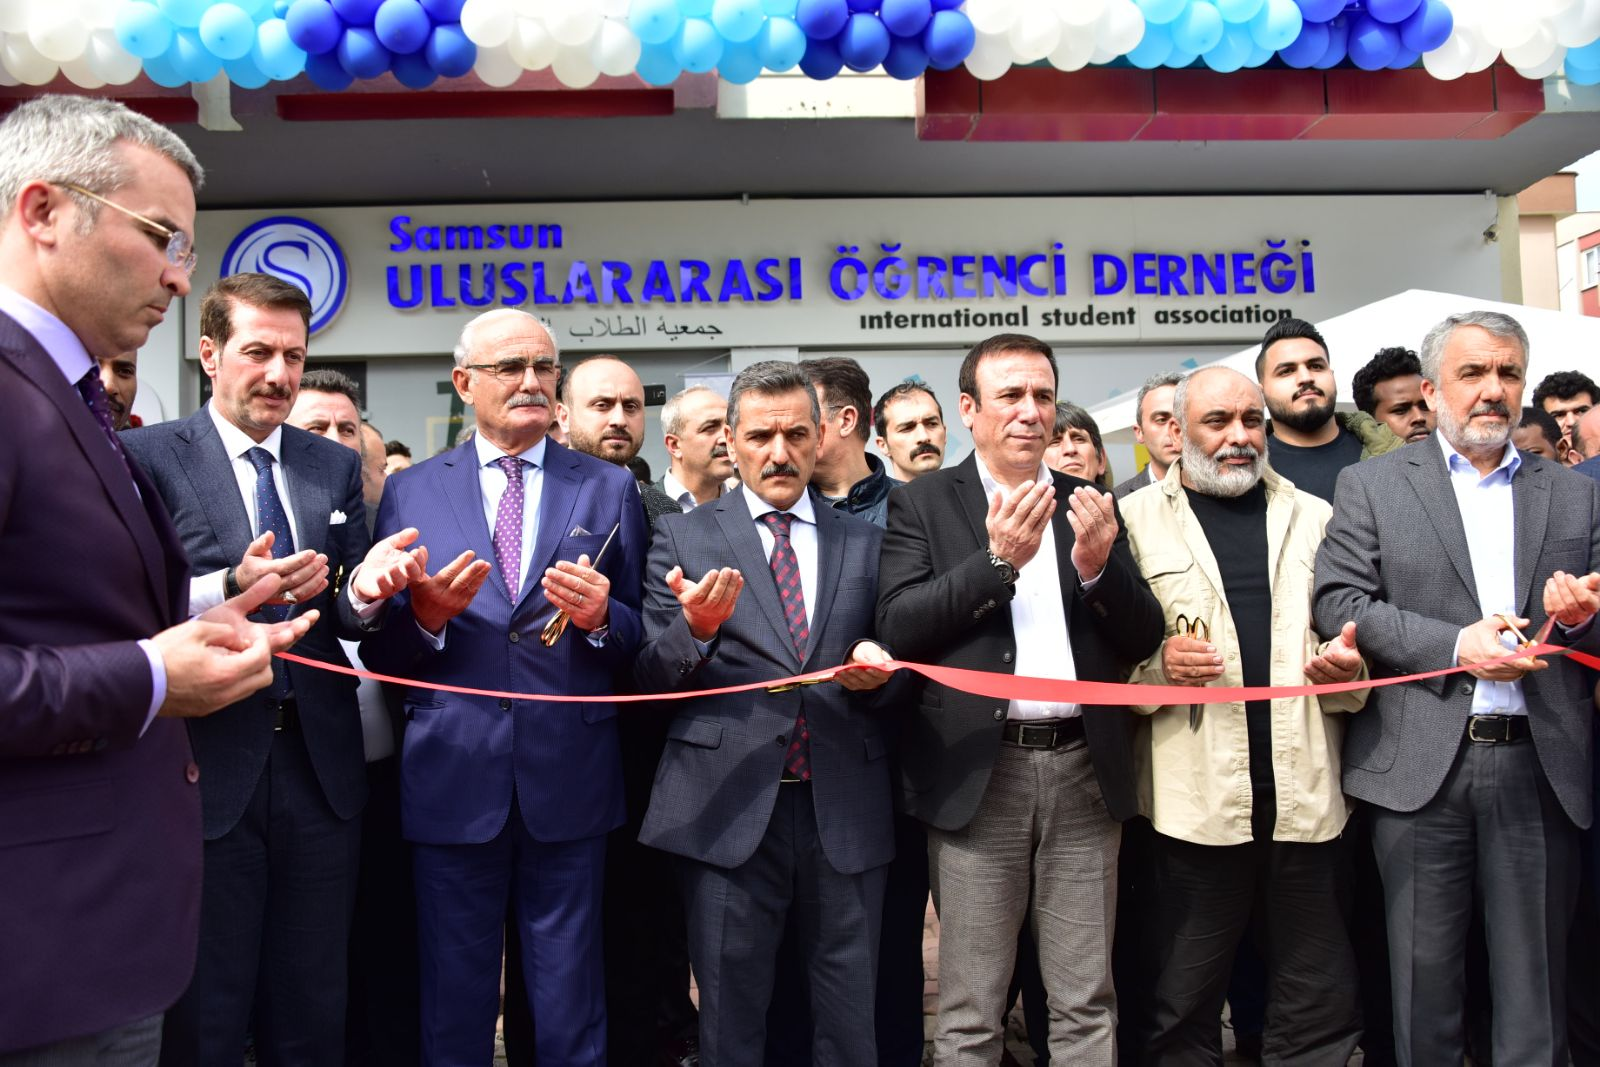 http://www.omu.edu.tr/sites/default/files/files/samsun_international_student_association_new_service_building_inaugurated/c16f1220-9dd9-42b2-8743-baabe74fab45.jpg